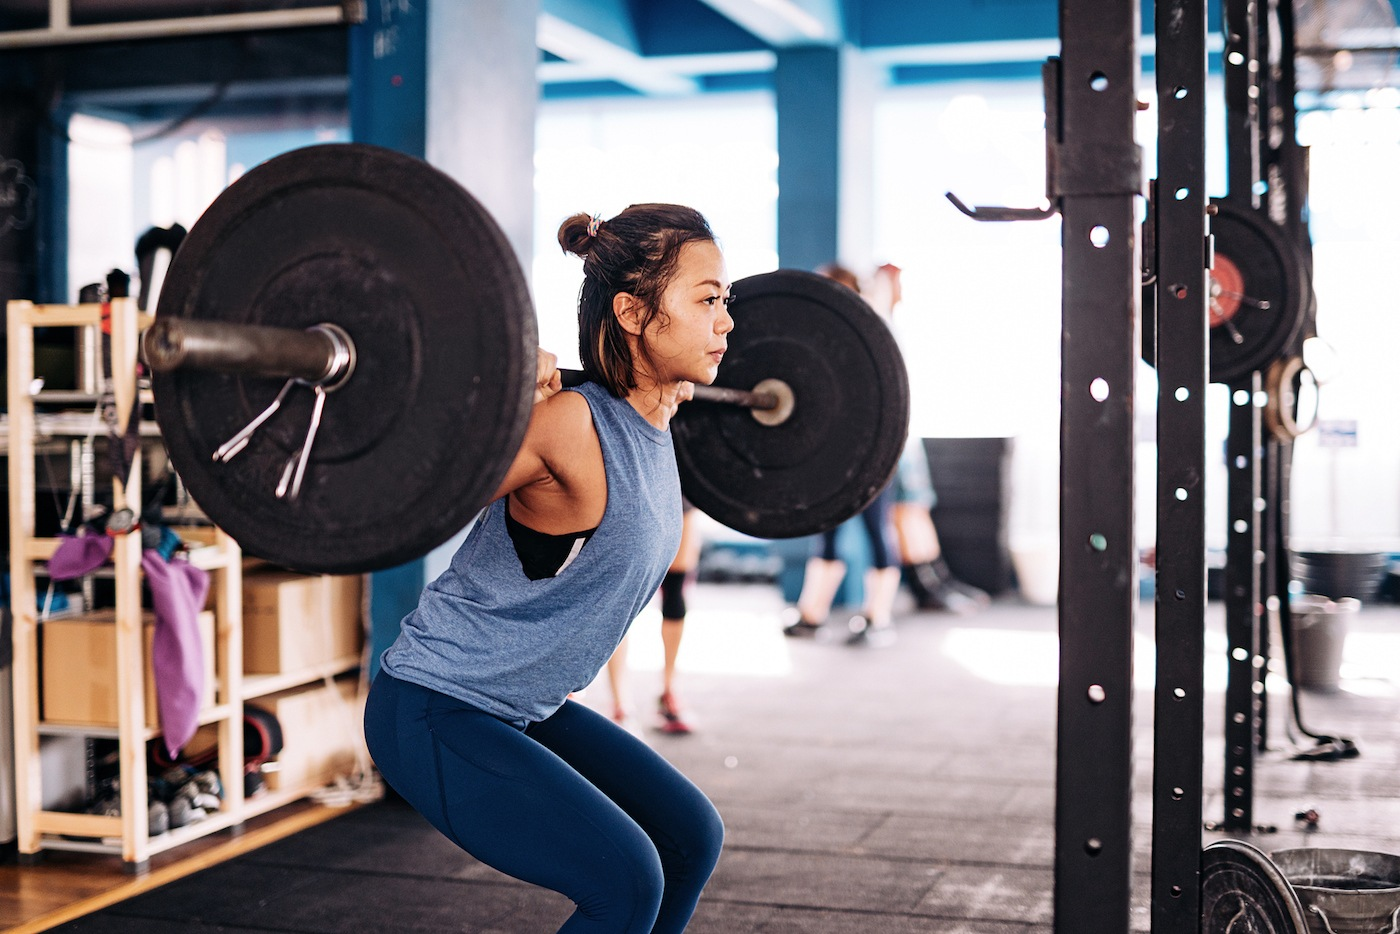 Thumbnail for Why you should watch out for the 'butt wink' when squatting